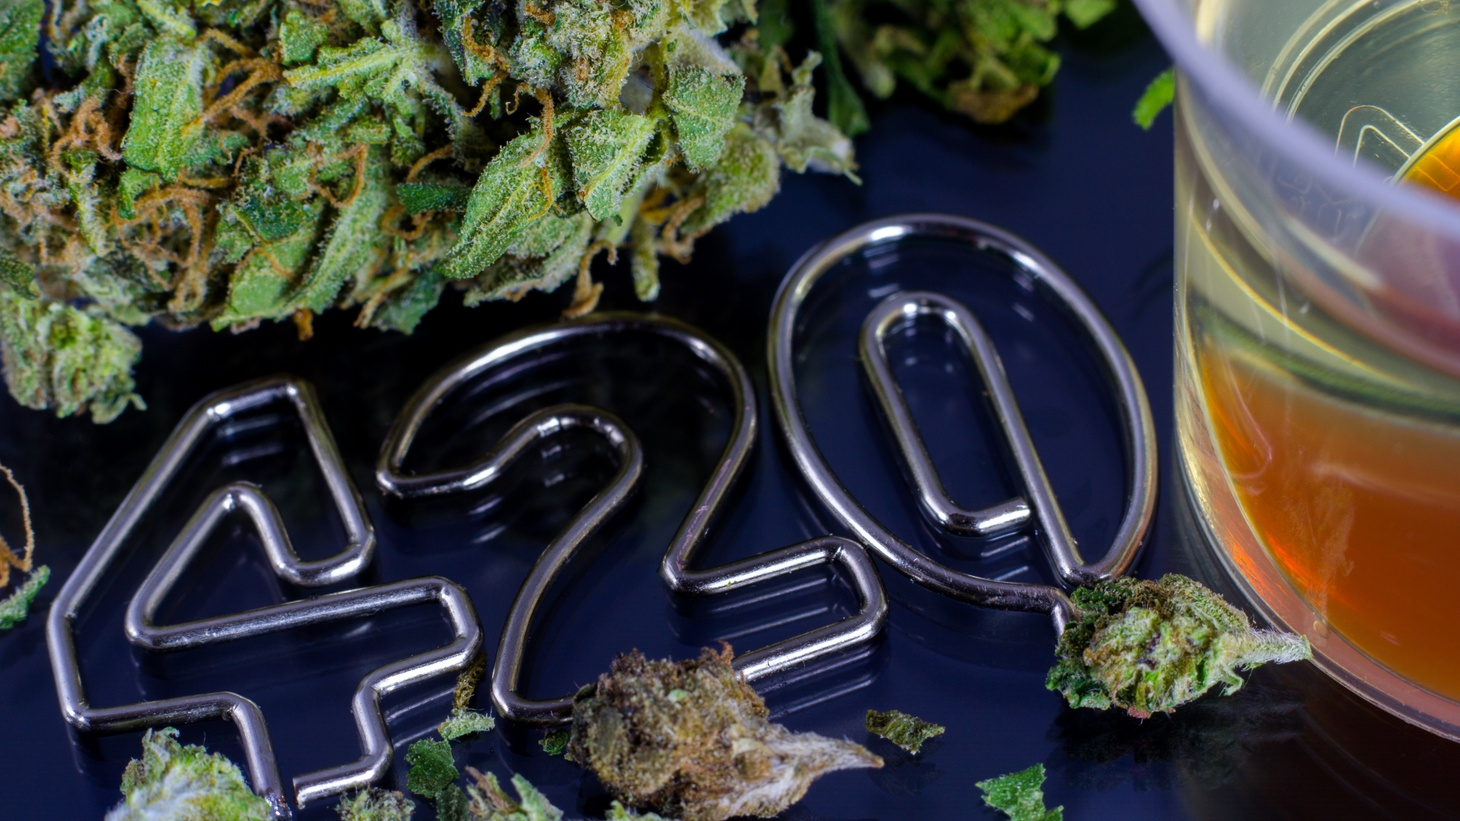 This year marks the 50th anniversary of 420.